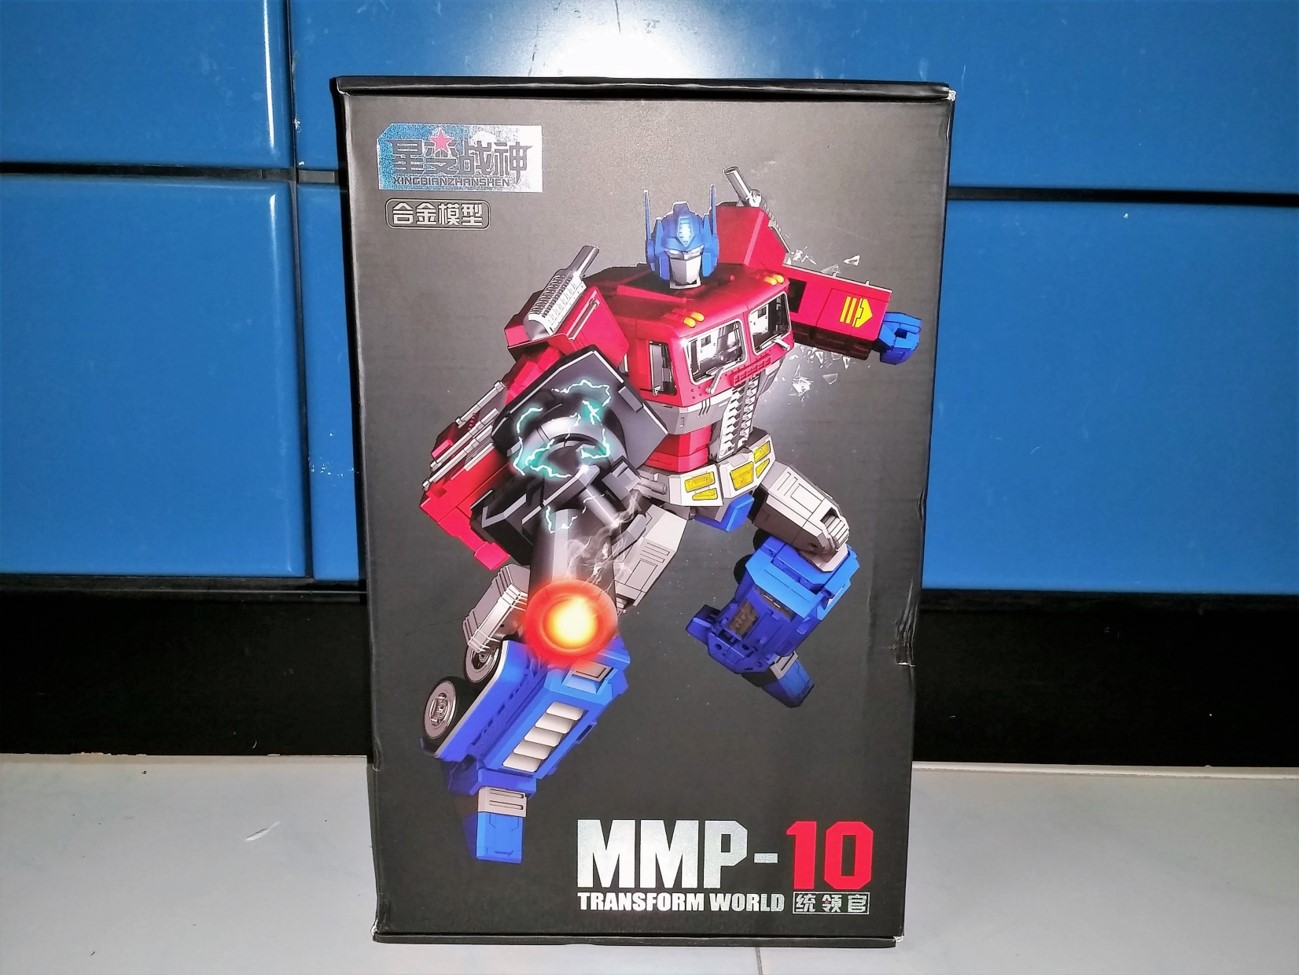 "Transformers Autobot MMP10 G1 Optimus Prime Toy Action Figure 12/"" Eyes Light New"